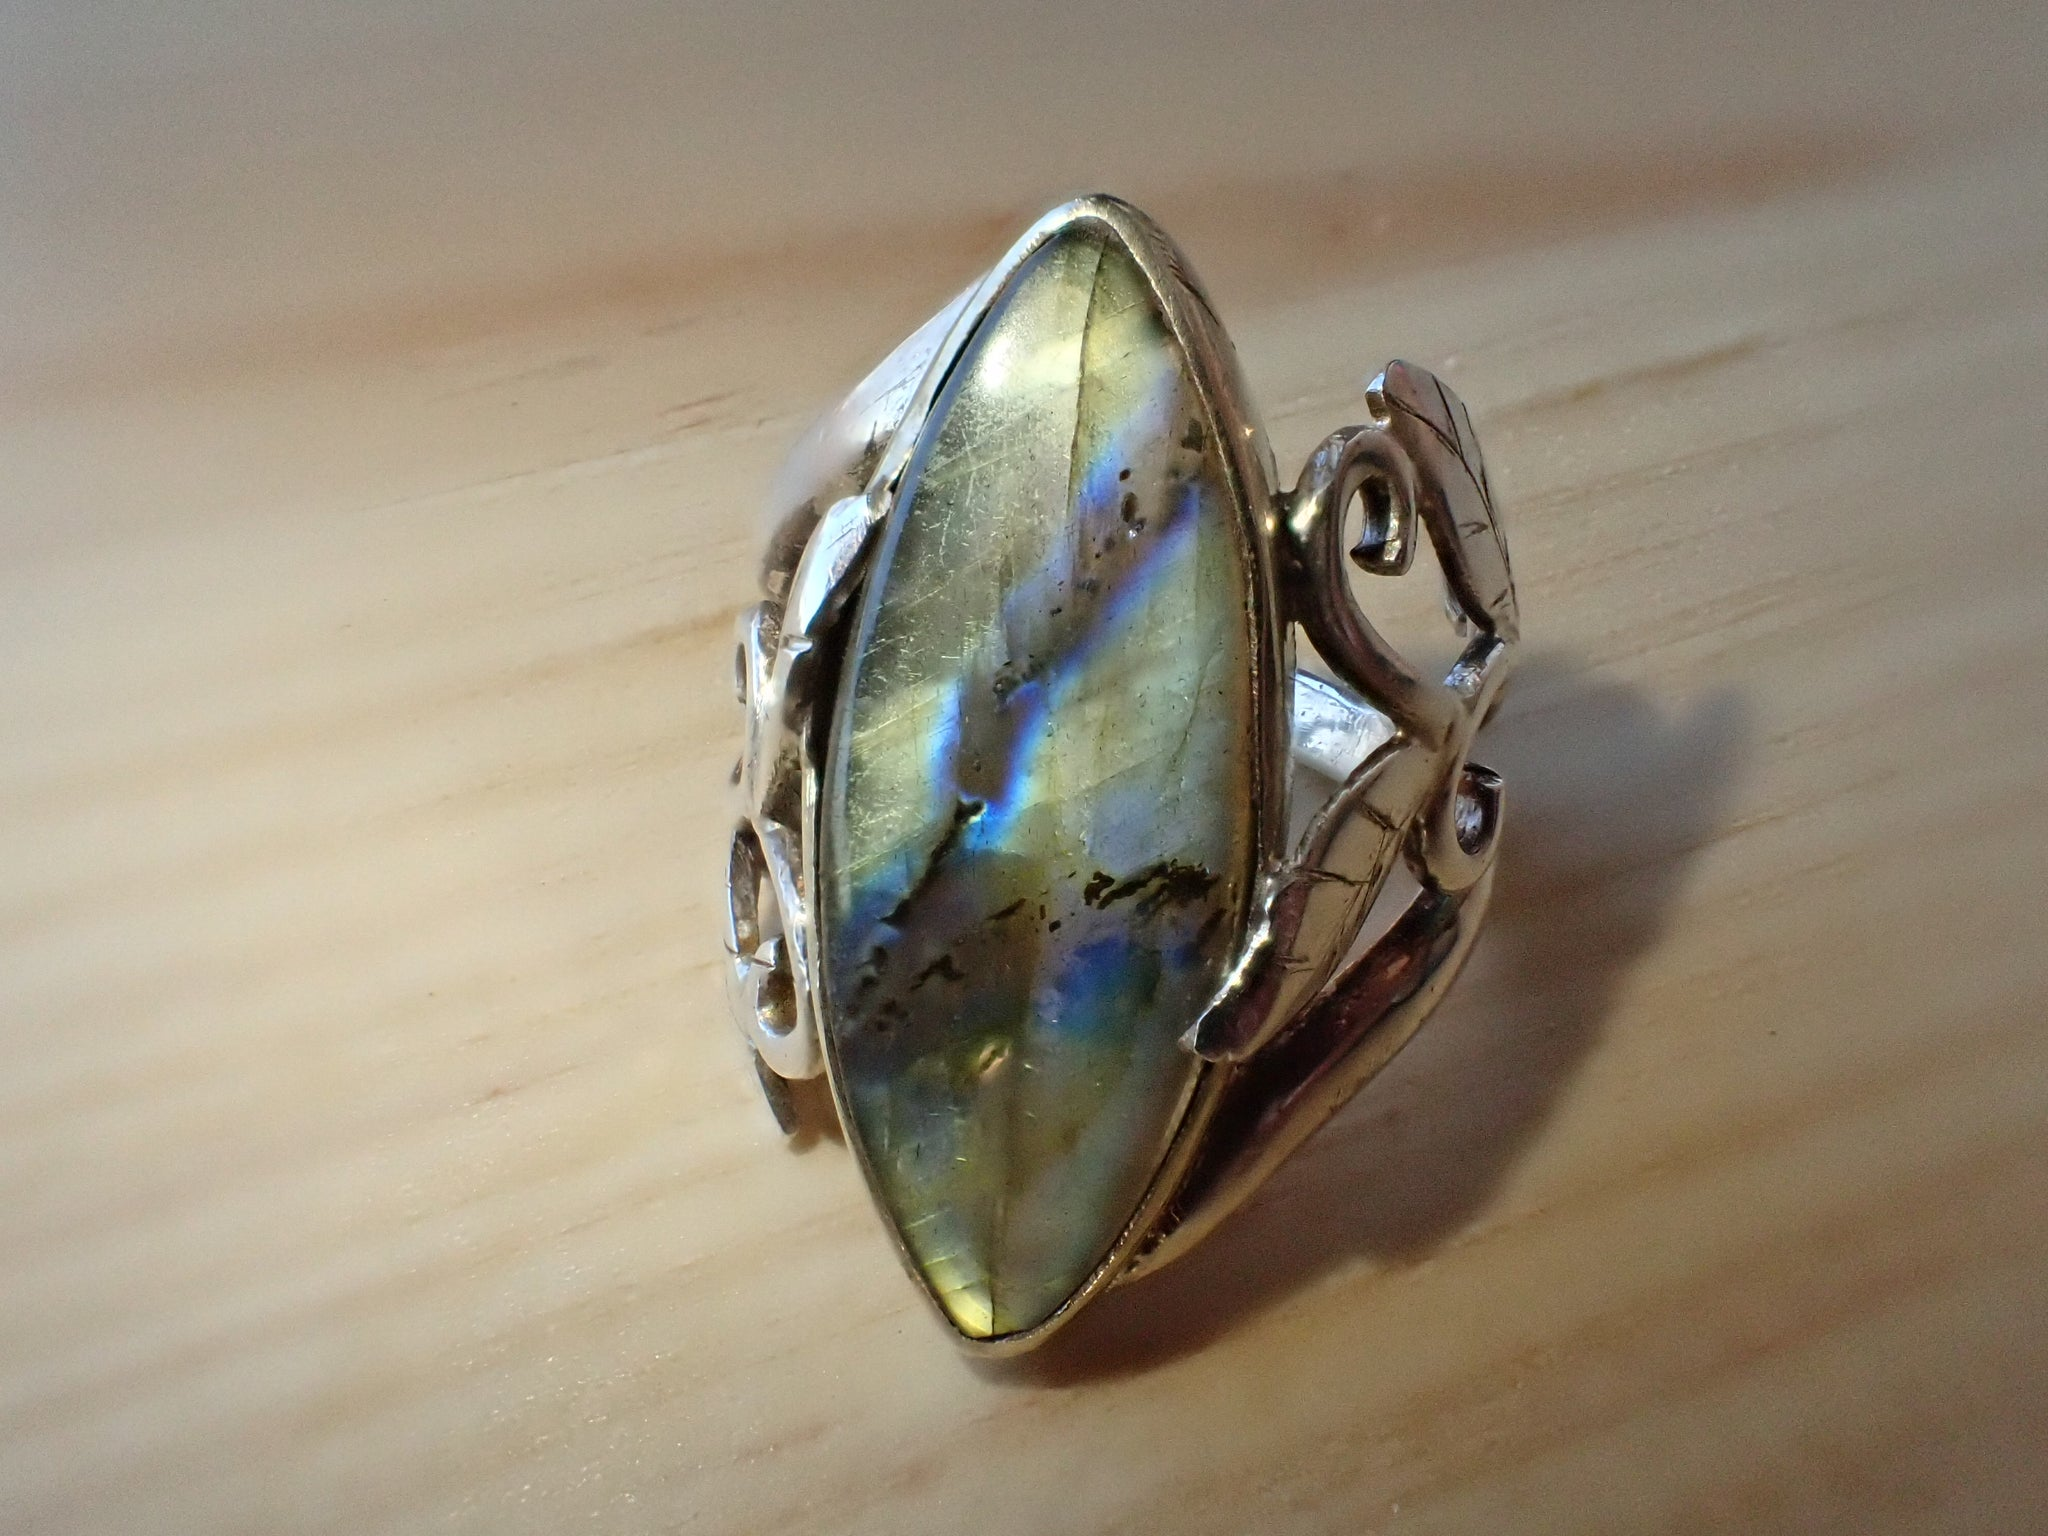 Sulo Jewellery Labradorite Crystal Stone Ring with Silver Leaf Detail, NWT